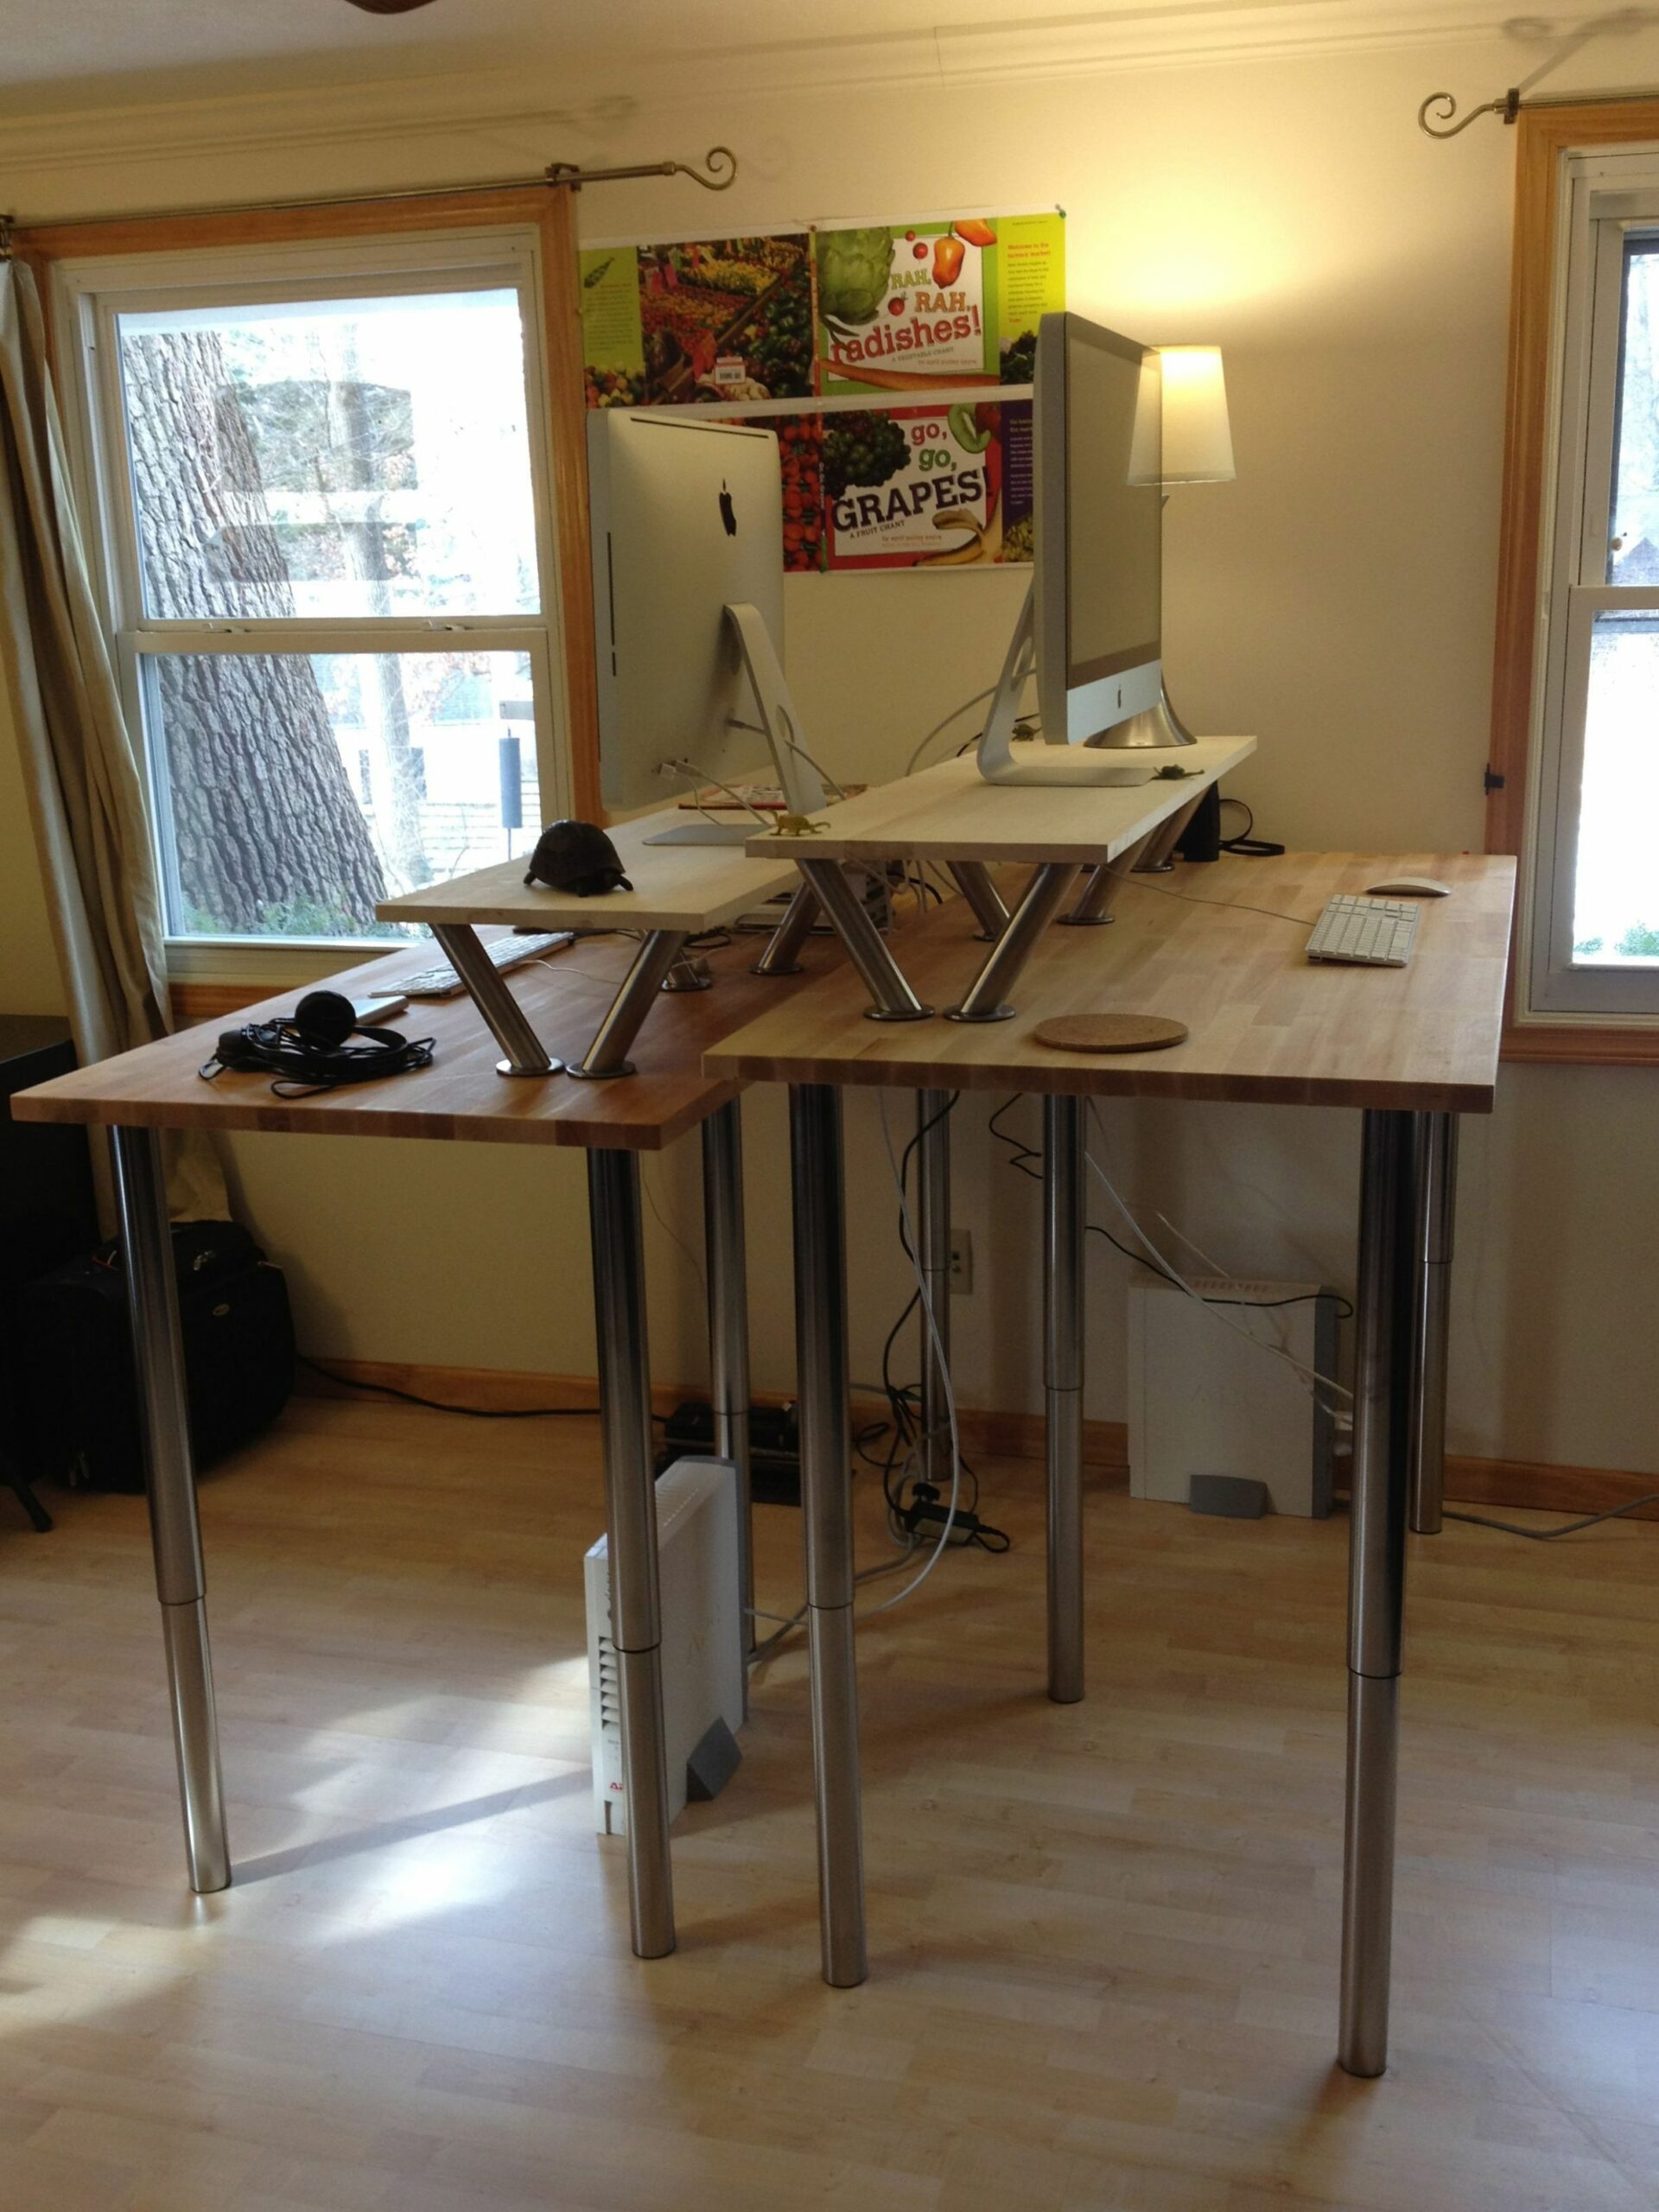 All Rise or A Standing Ovation (With images) | Diy standing desk - home office ideas standing desk